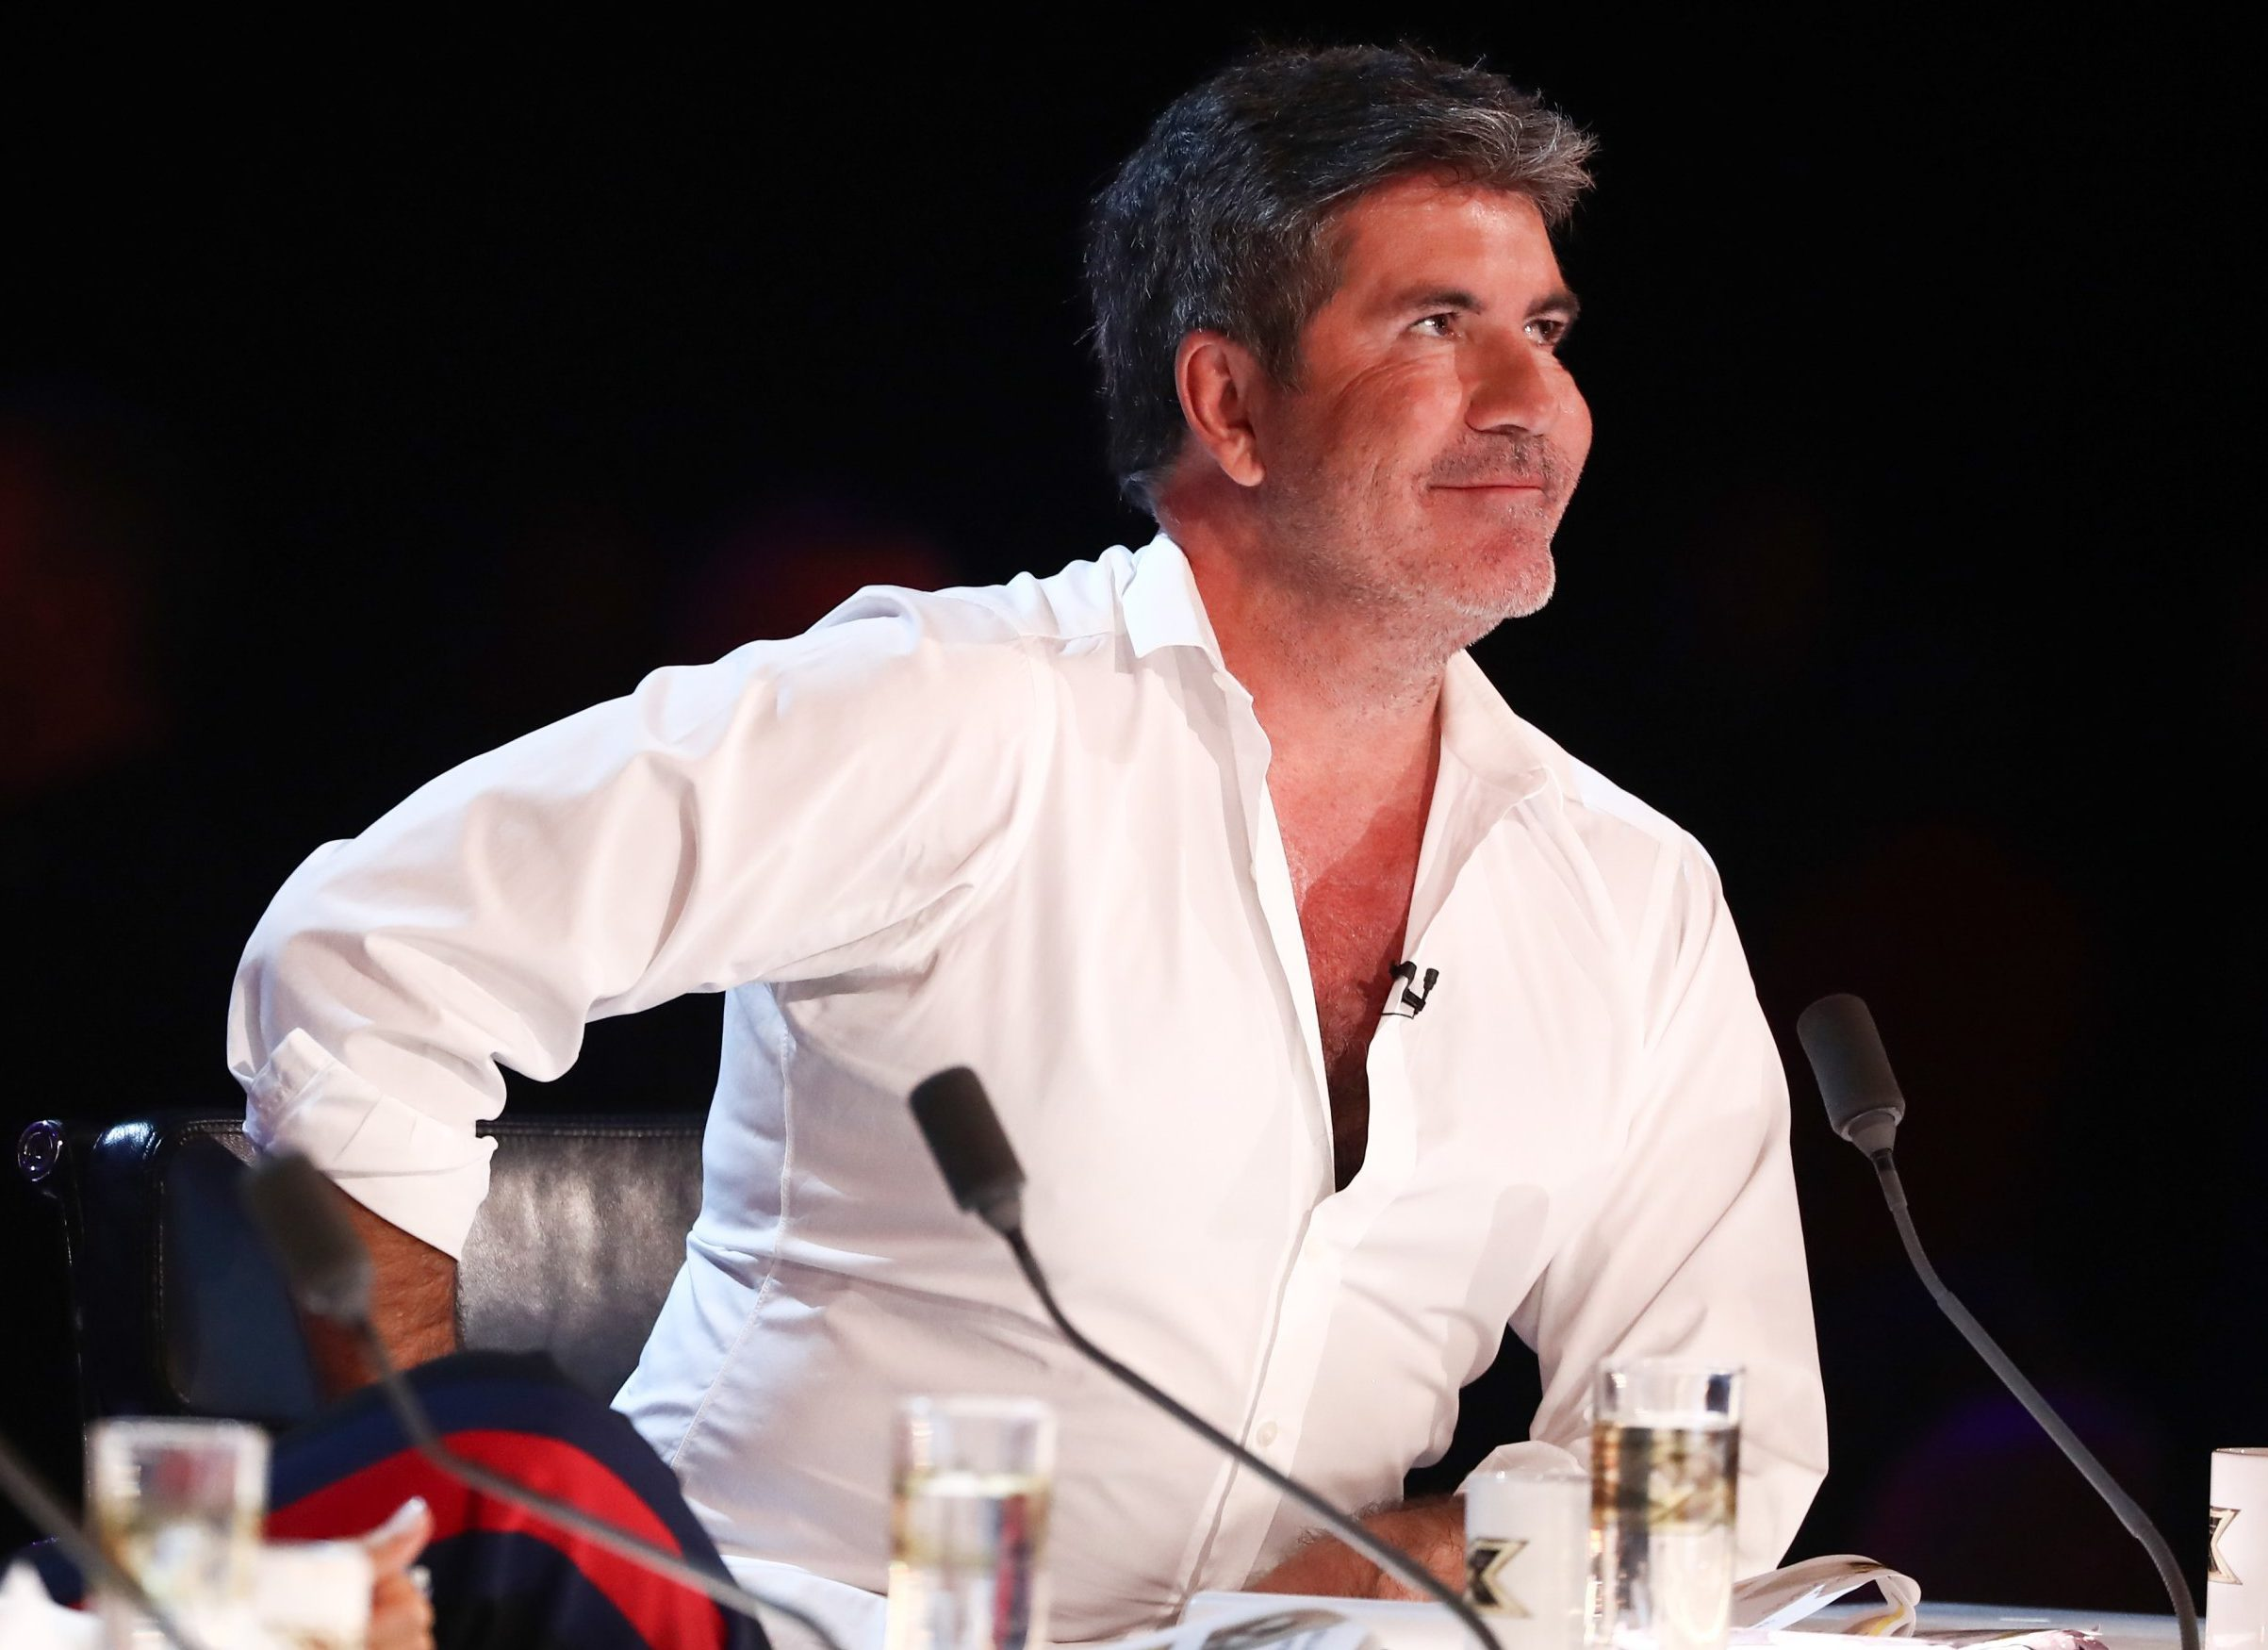 Simon Cowell is shook by a pole dancing act on Britain's Got Talent: 'I thought I was in a nightmare'